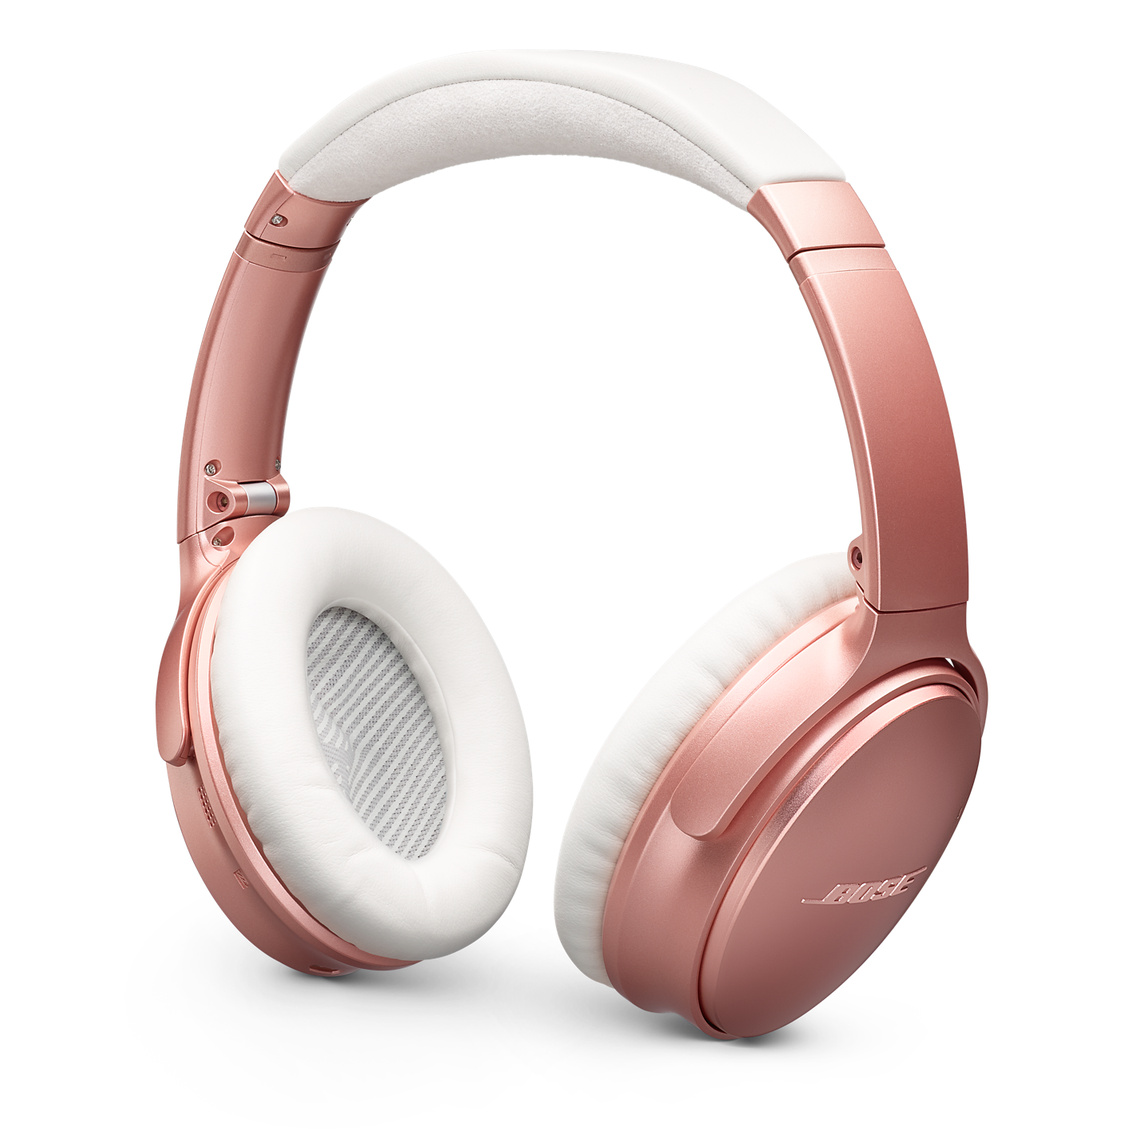 Fin Bose® QuietComfort® 35 Wireless Headphones II - Rose Gold - Apple (DK) XM-26